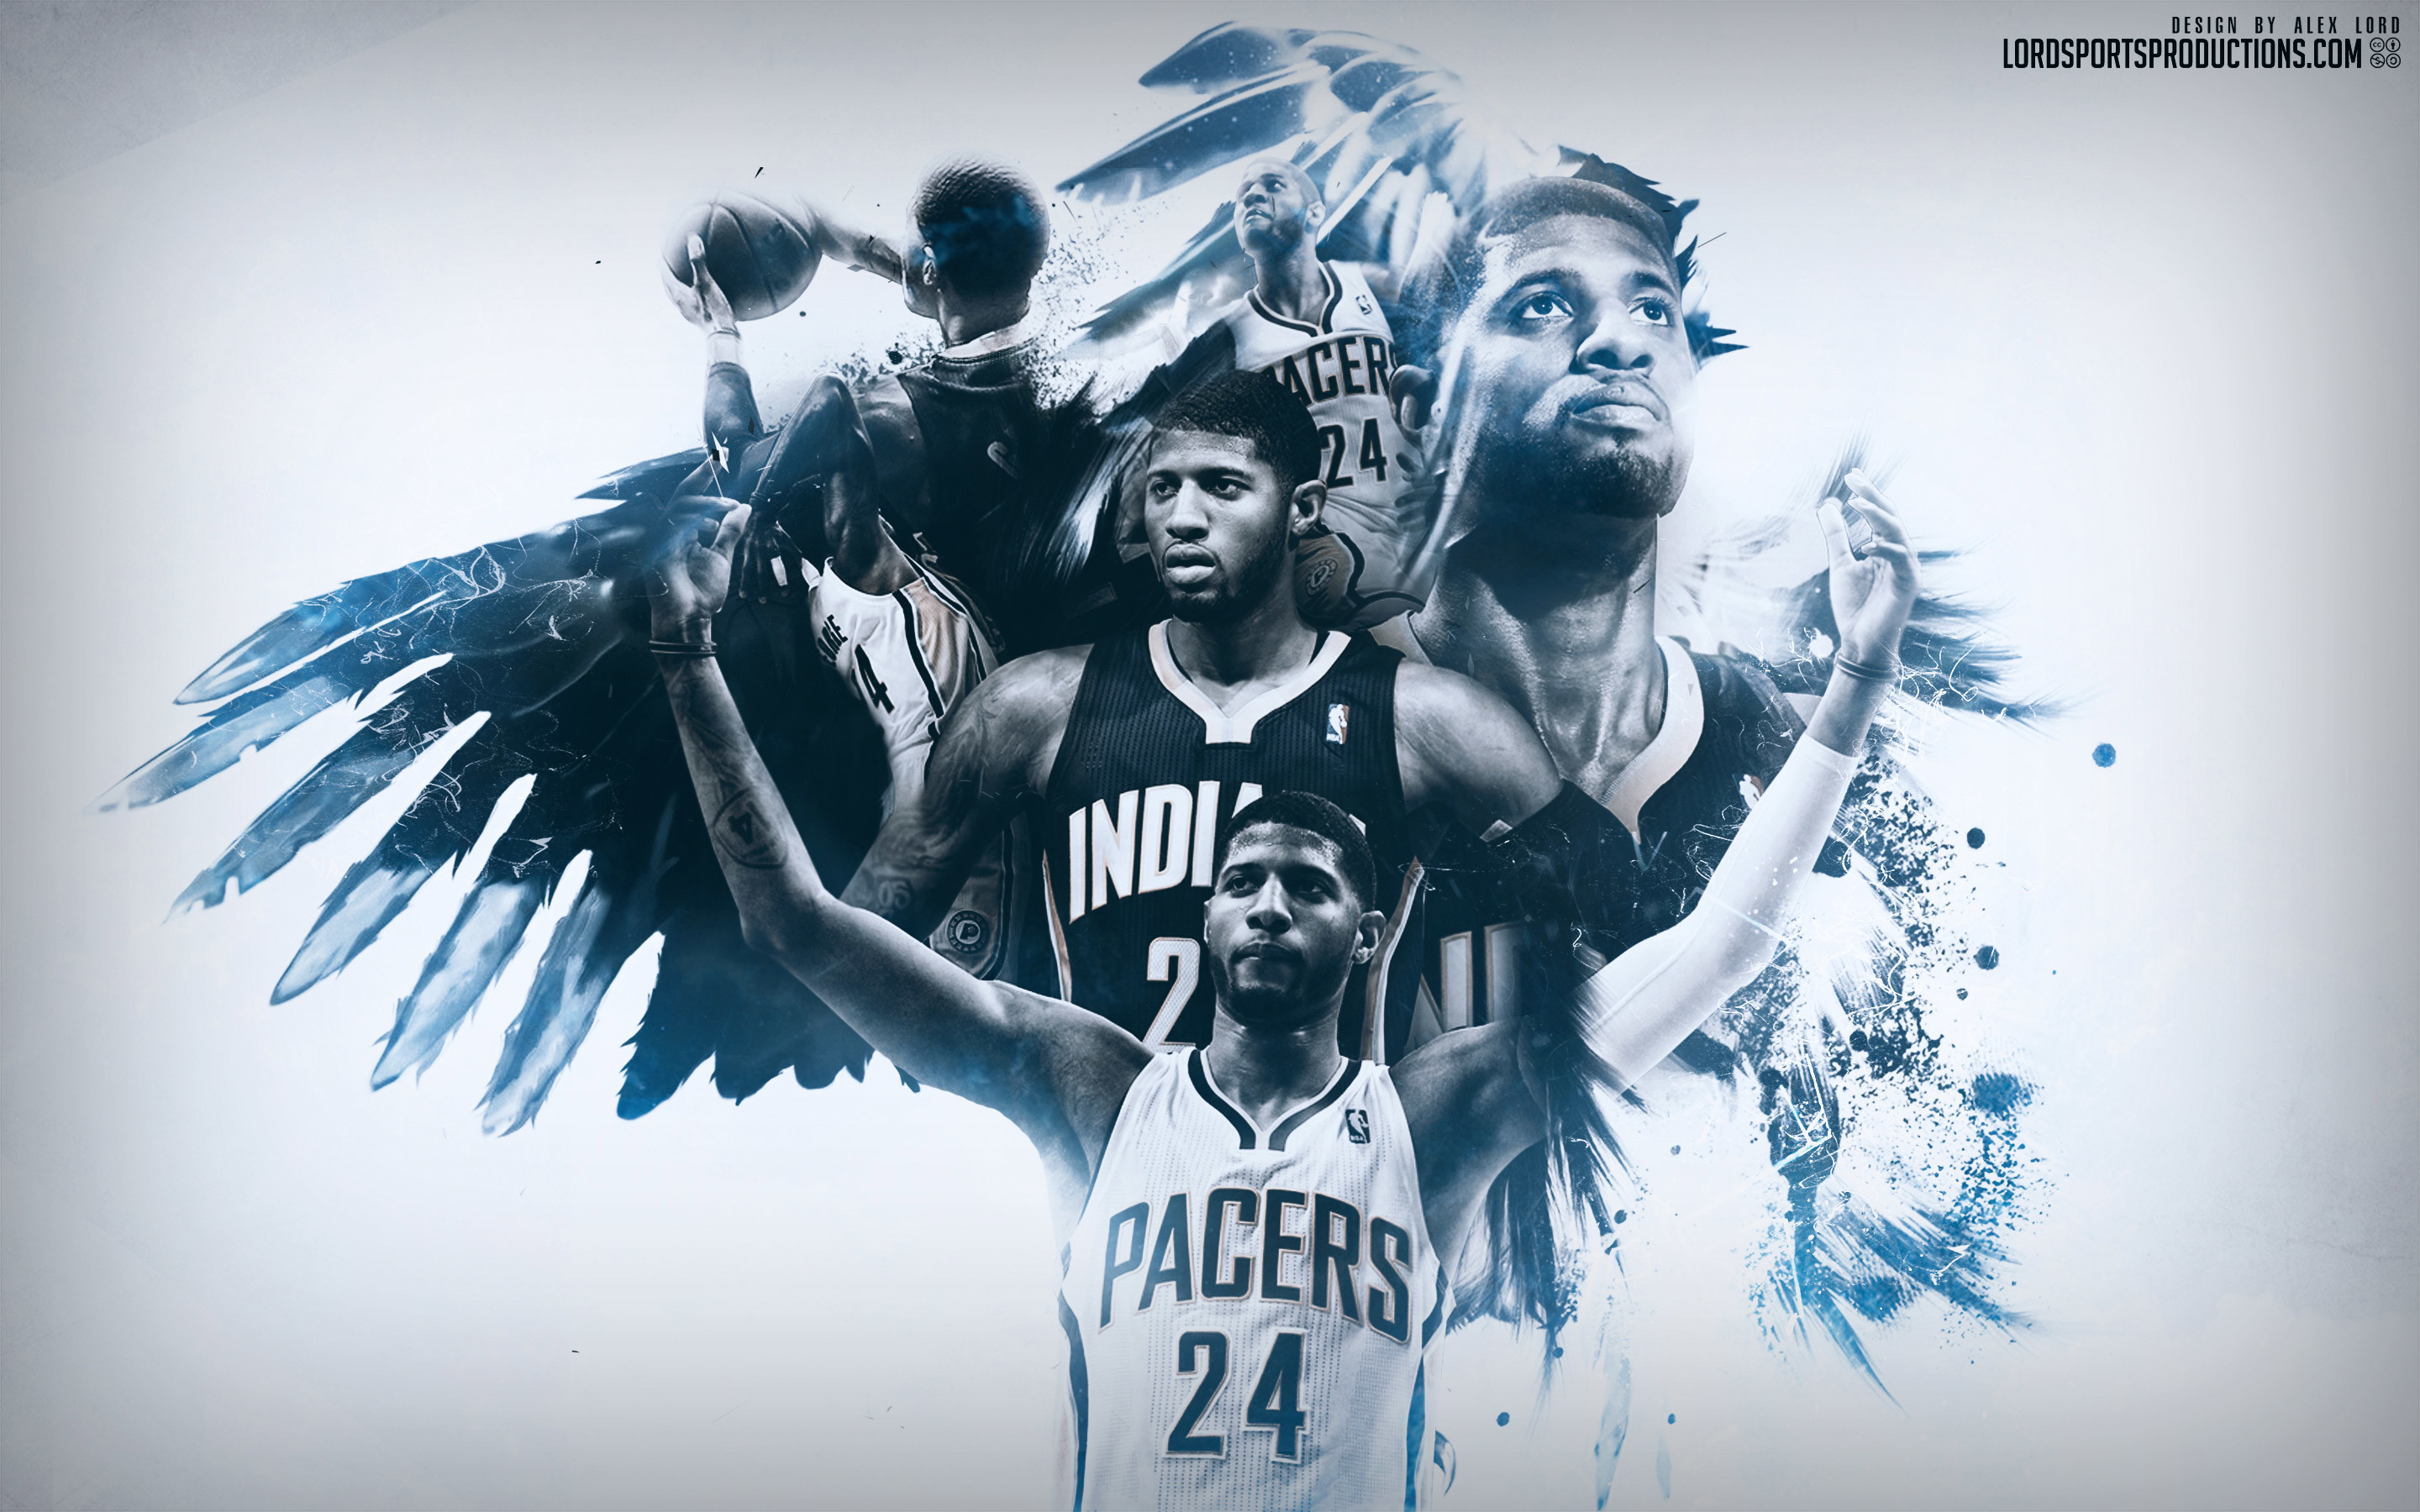 Paul George Indiana Pacers 2015-2016 Wallpaper